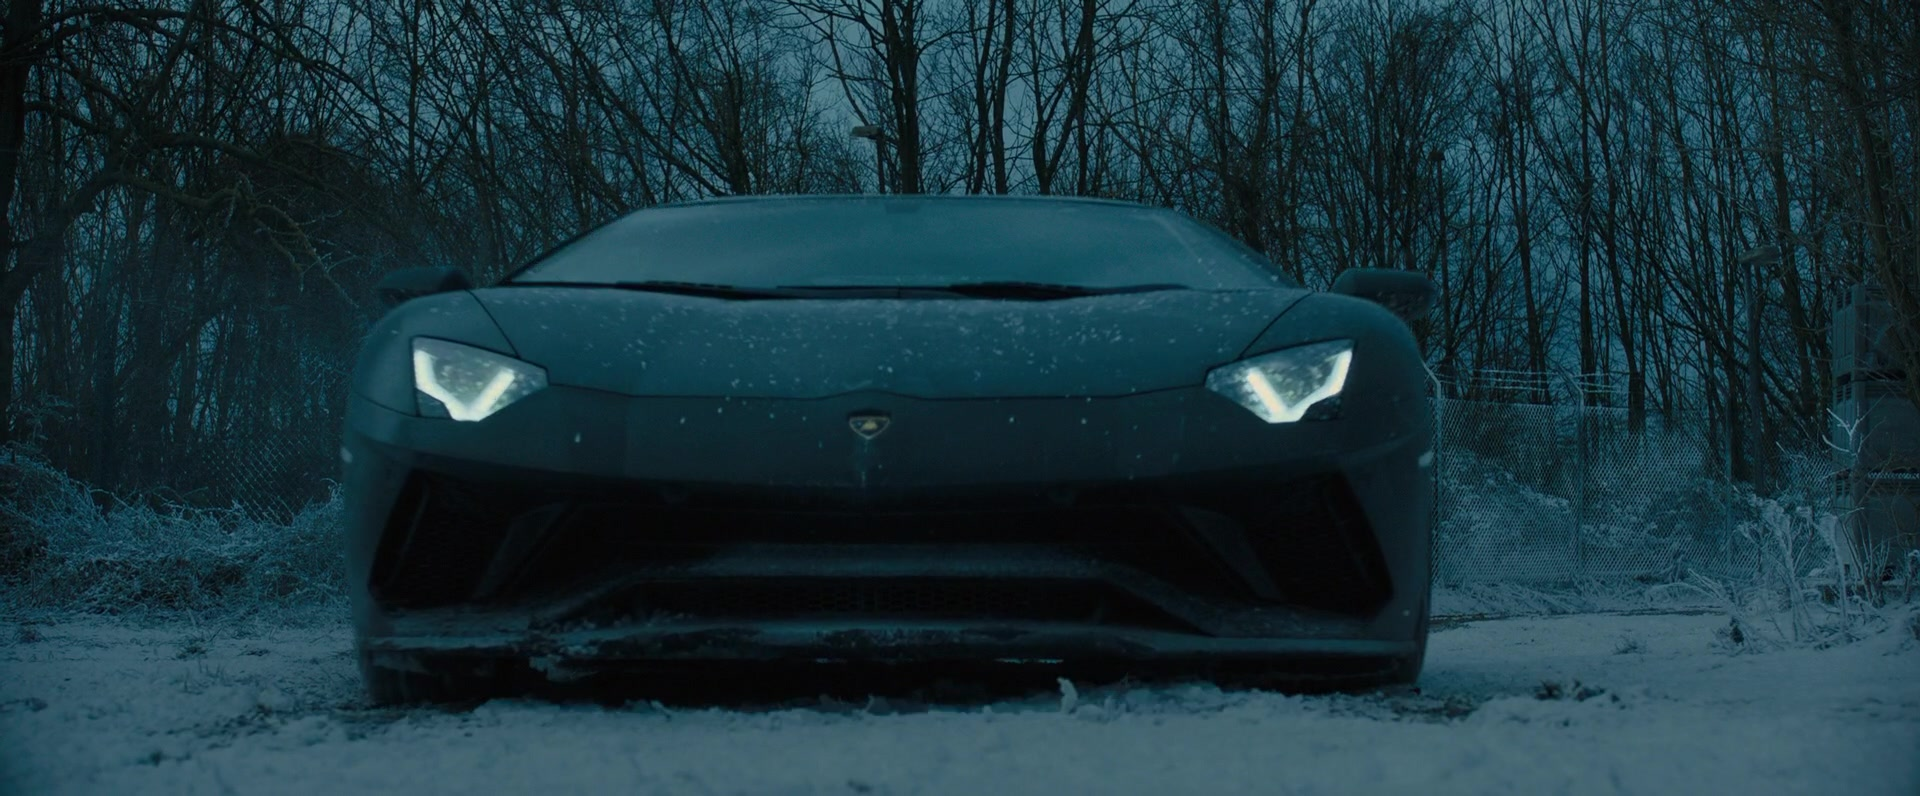 Lamborghini Aventador Sports Car In The Girl In The Spider S Web on 2012 Lincoln Town Car